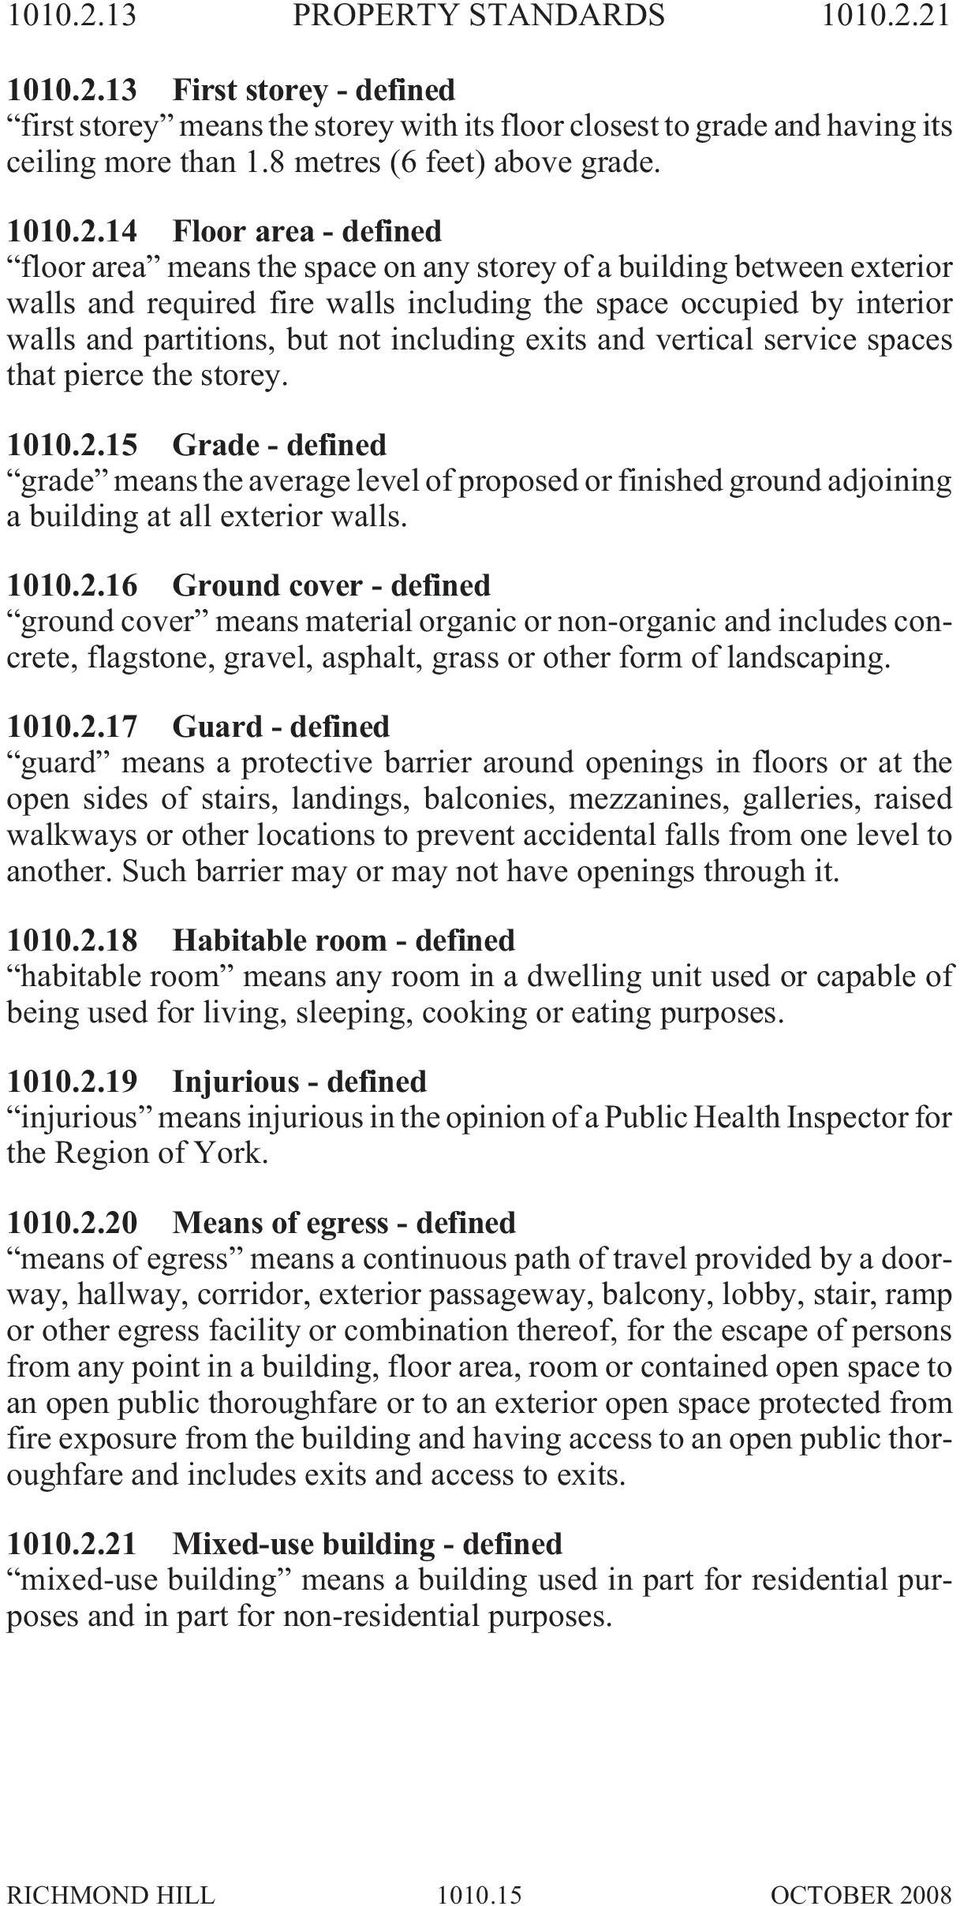 14 Floor area - defined floor area means the space on any storey of a building between exterior walls and required fire walls including the space occupied by interior walls and partitions, but not